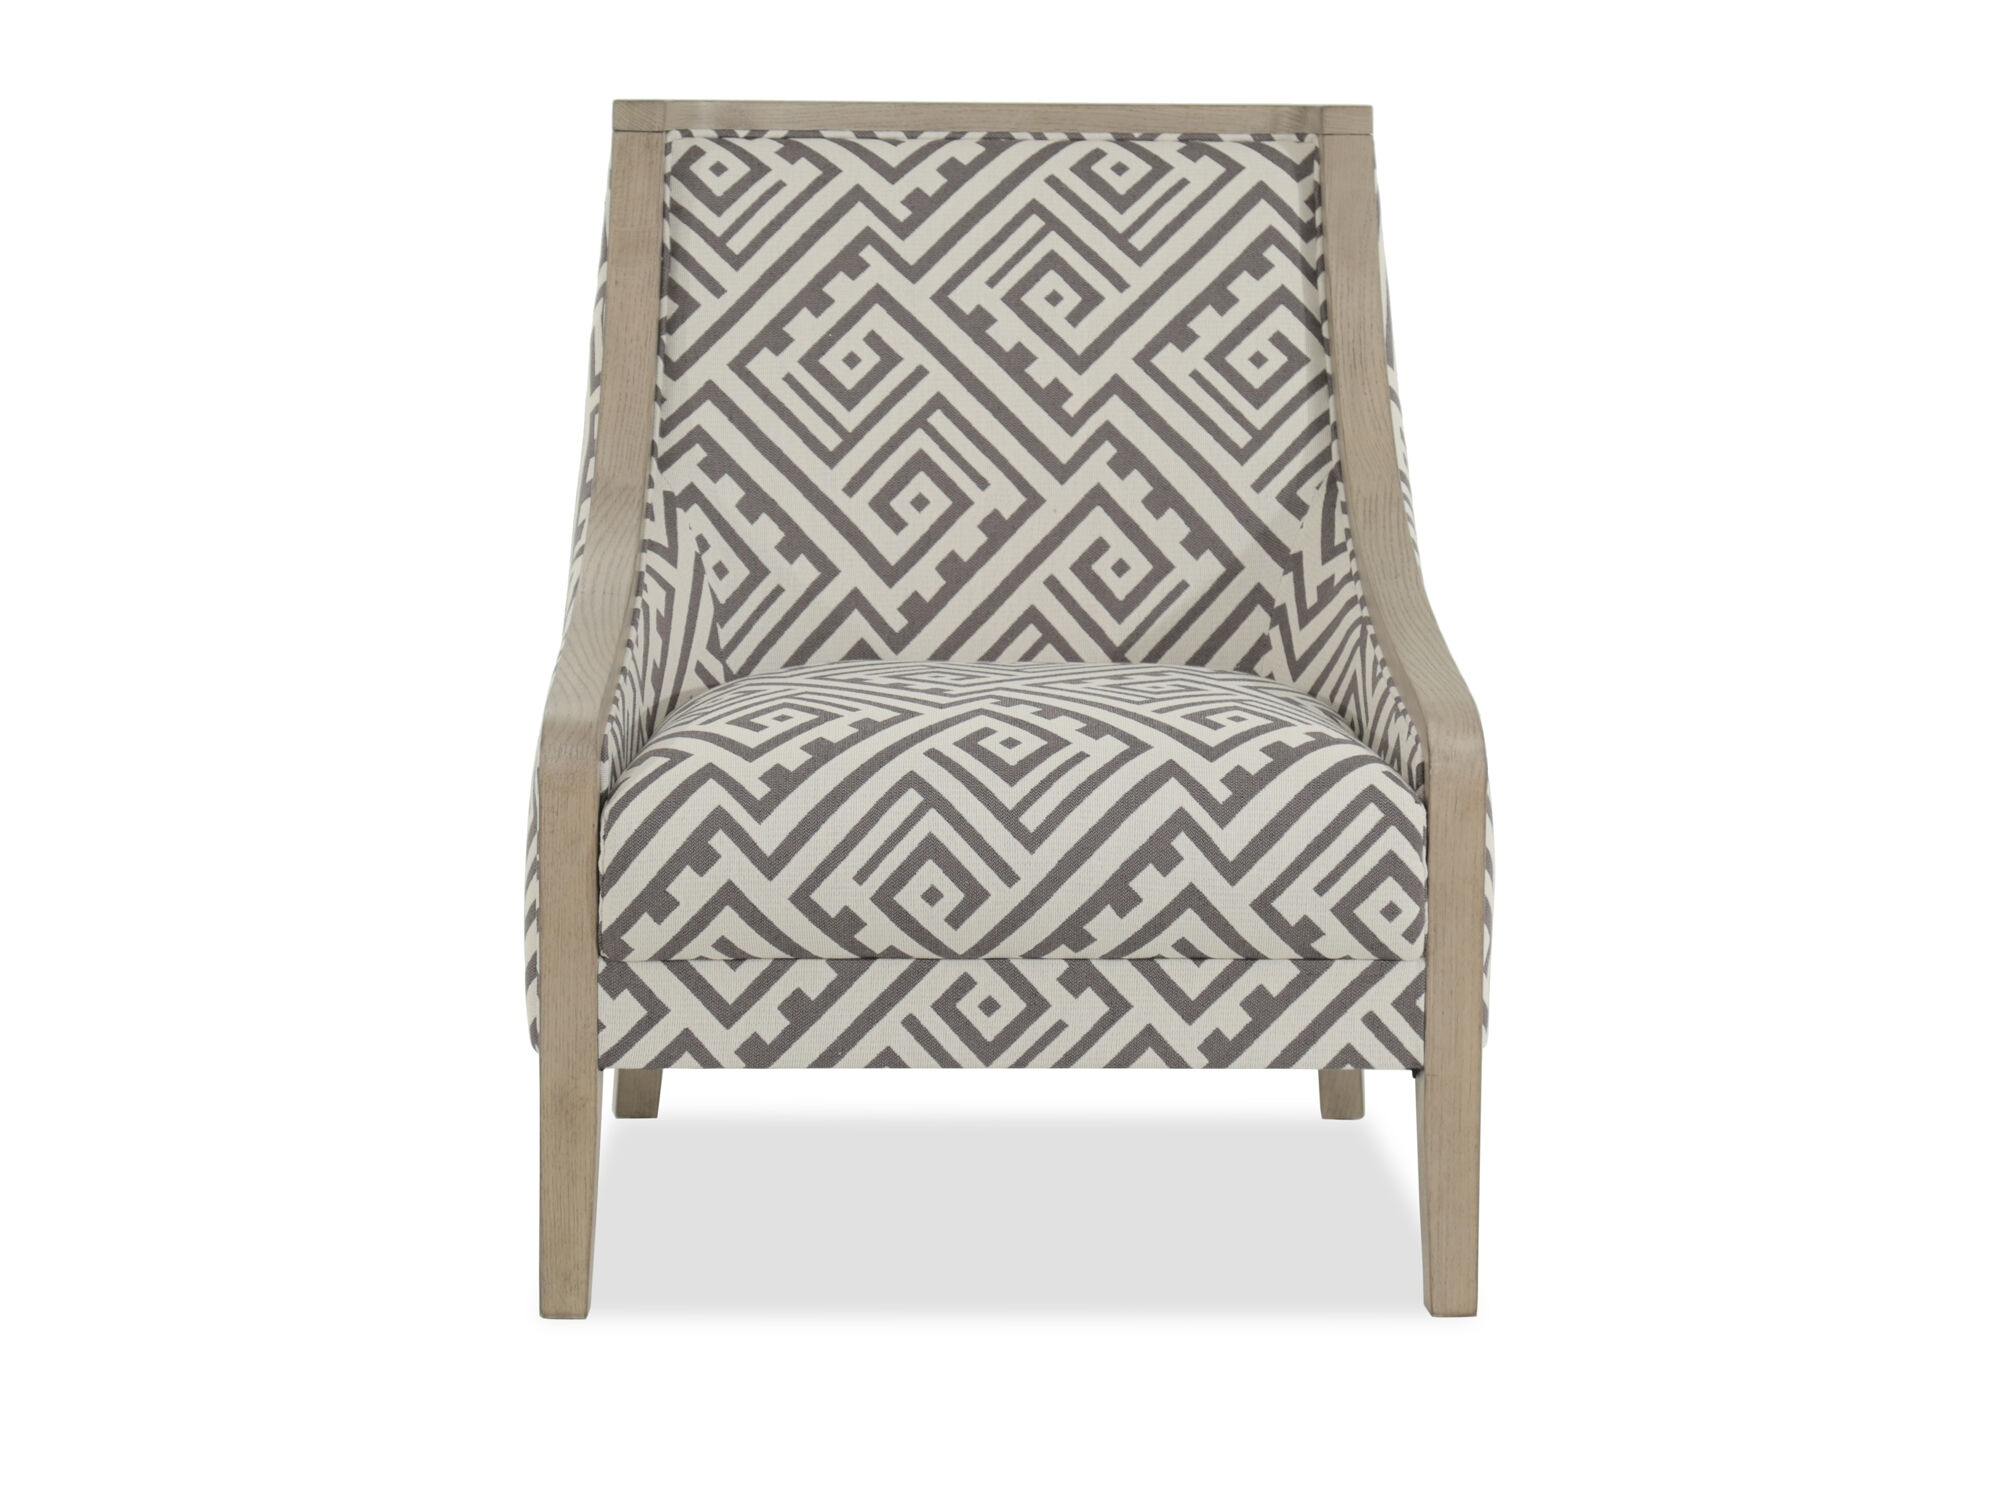 Geometric Patterned Contemporary 28 Quot Accent Chair Mathis